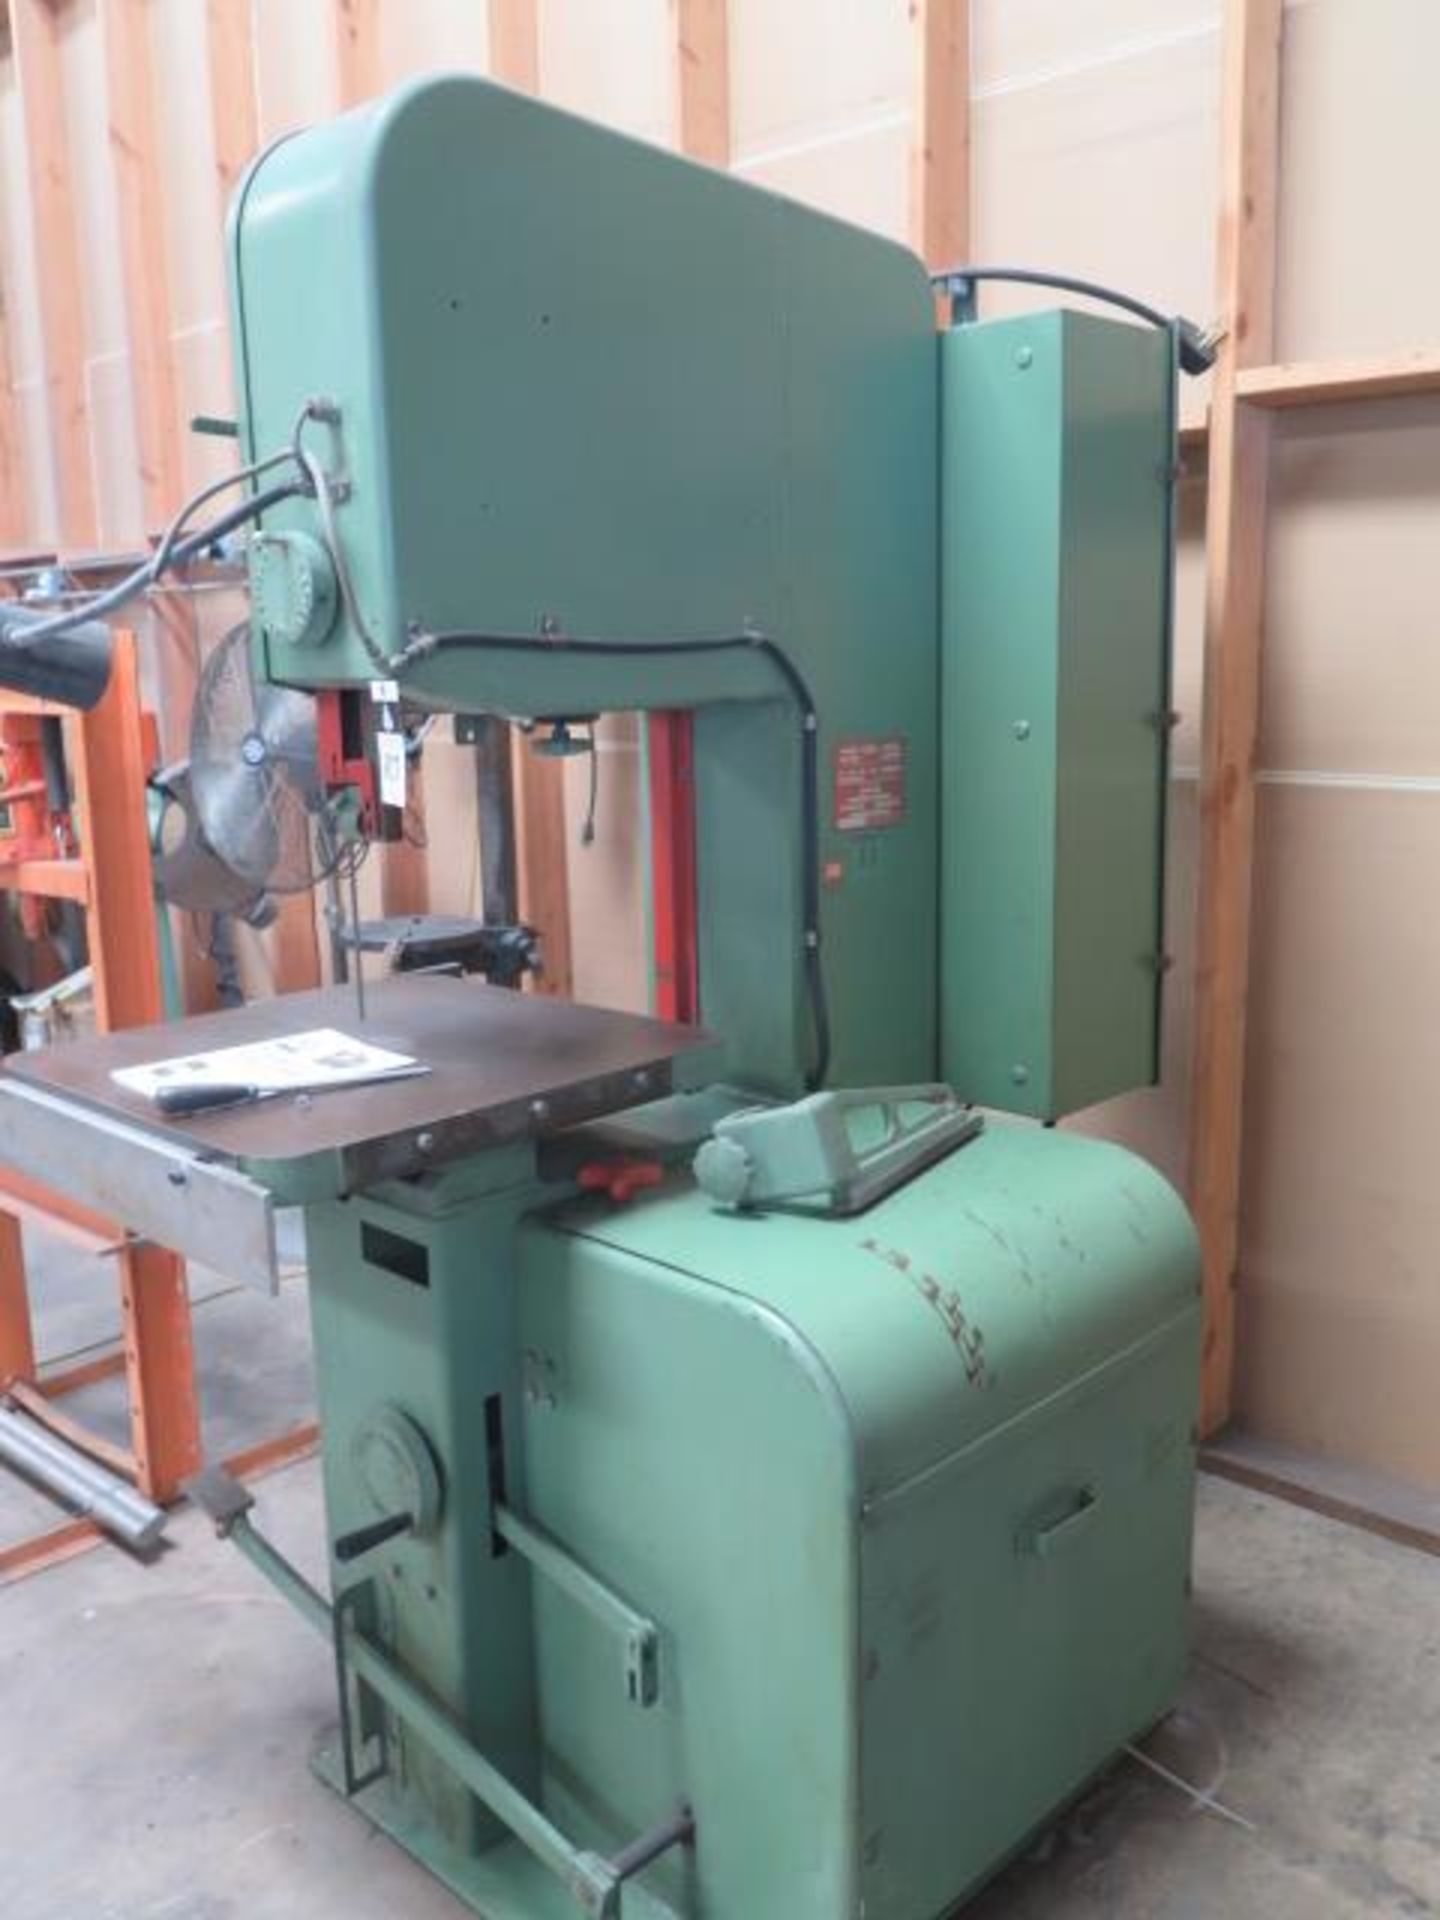 "DoAll 2013-10 20"" Vertical Band Saw s/n 377-861259 w/ Welder, 0-5200 RPM 26"" x 26"" Table, SOLD AS IS - Image 9 of 11"